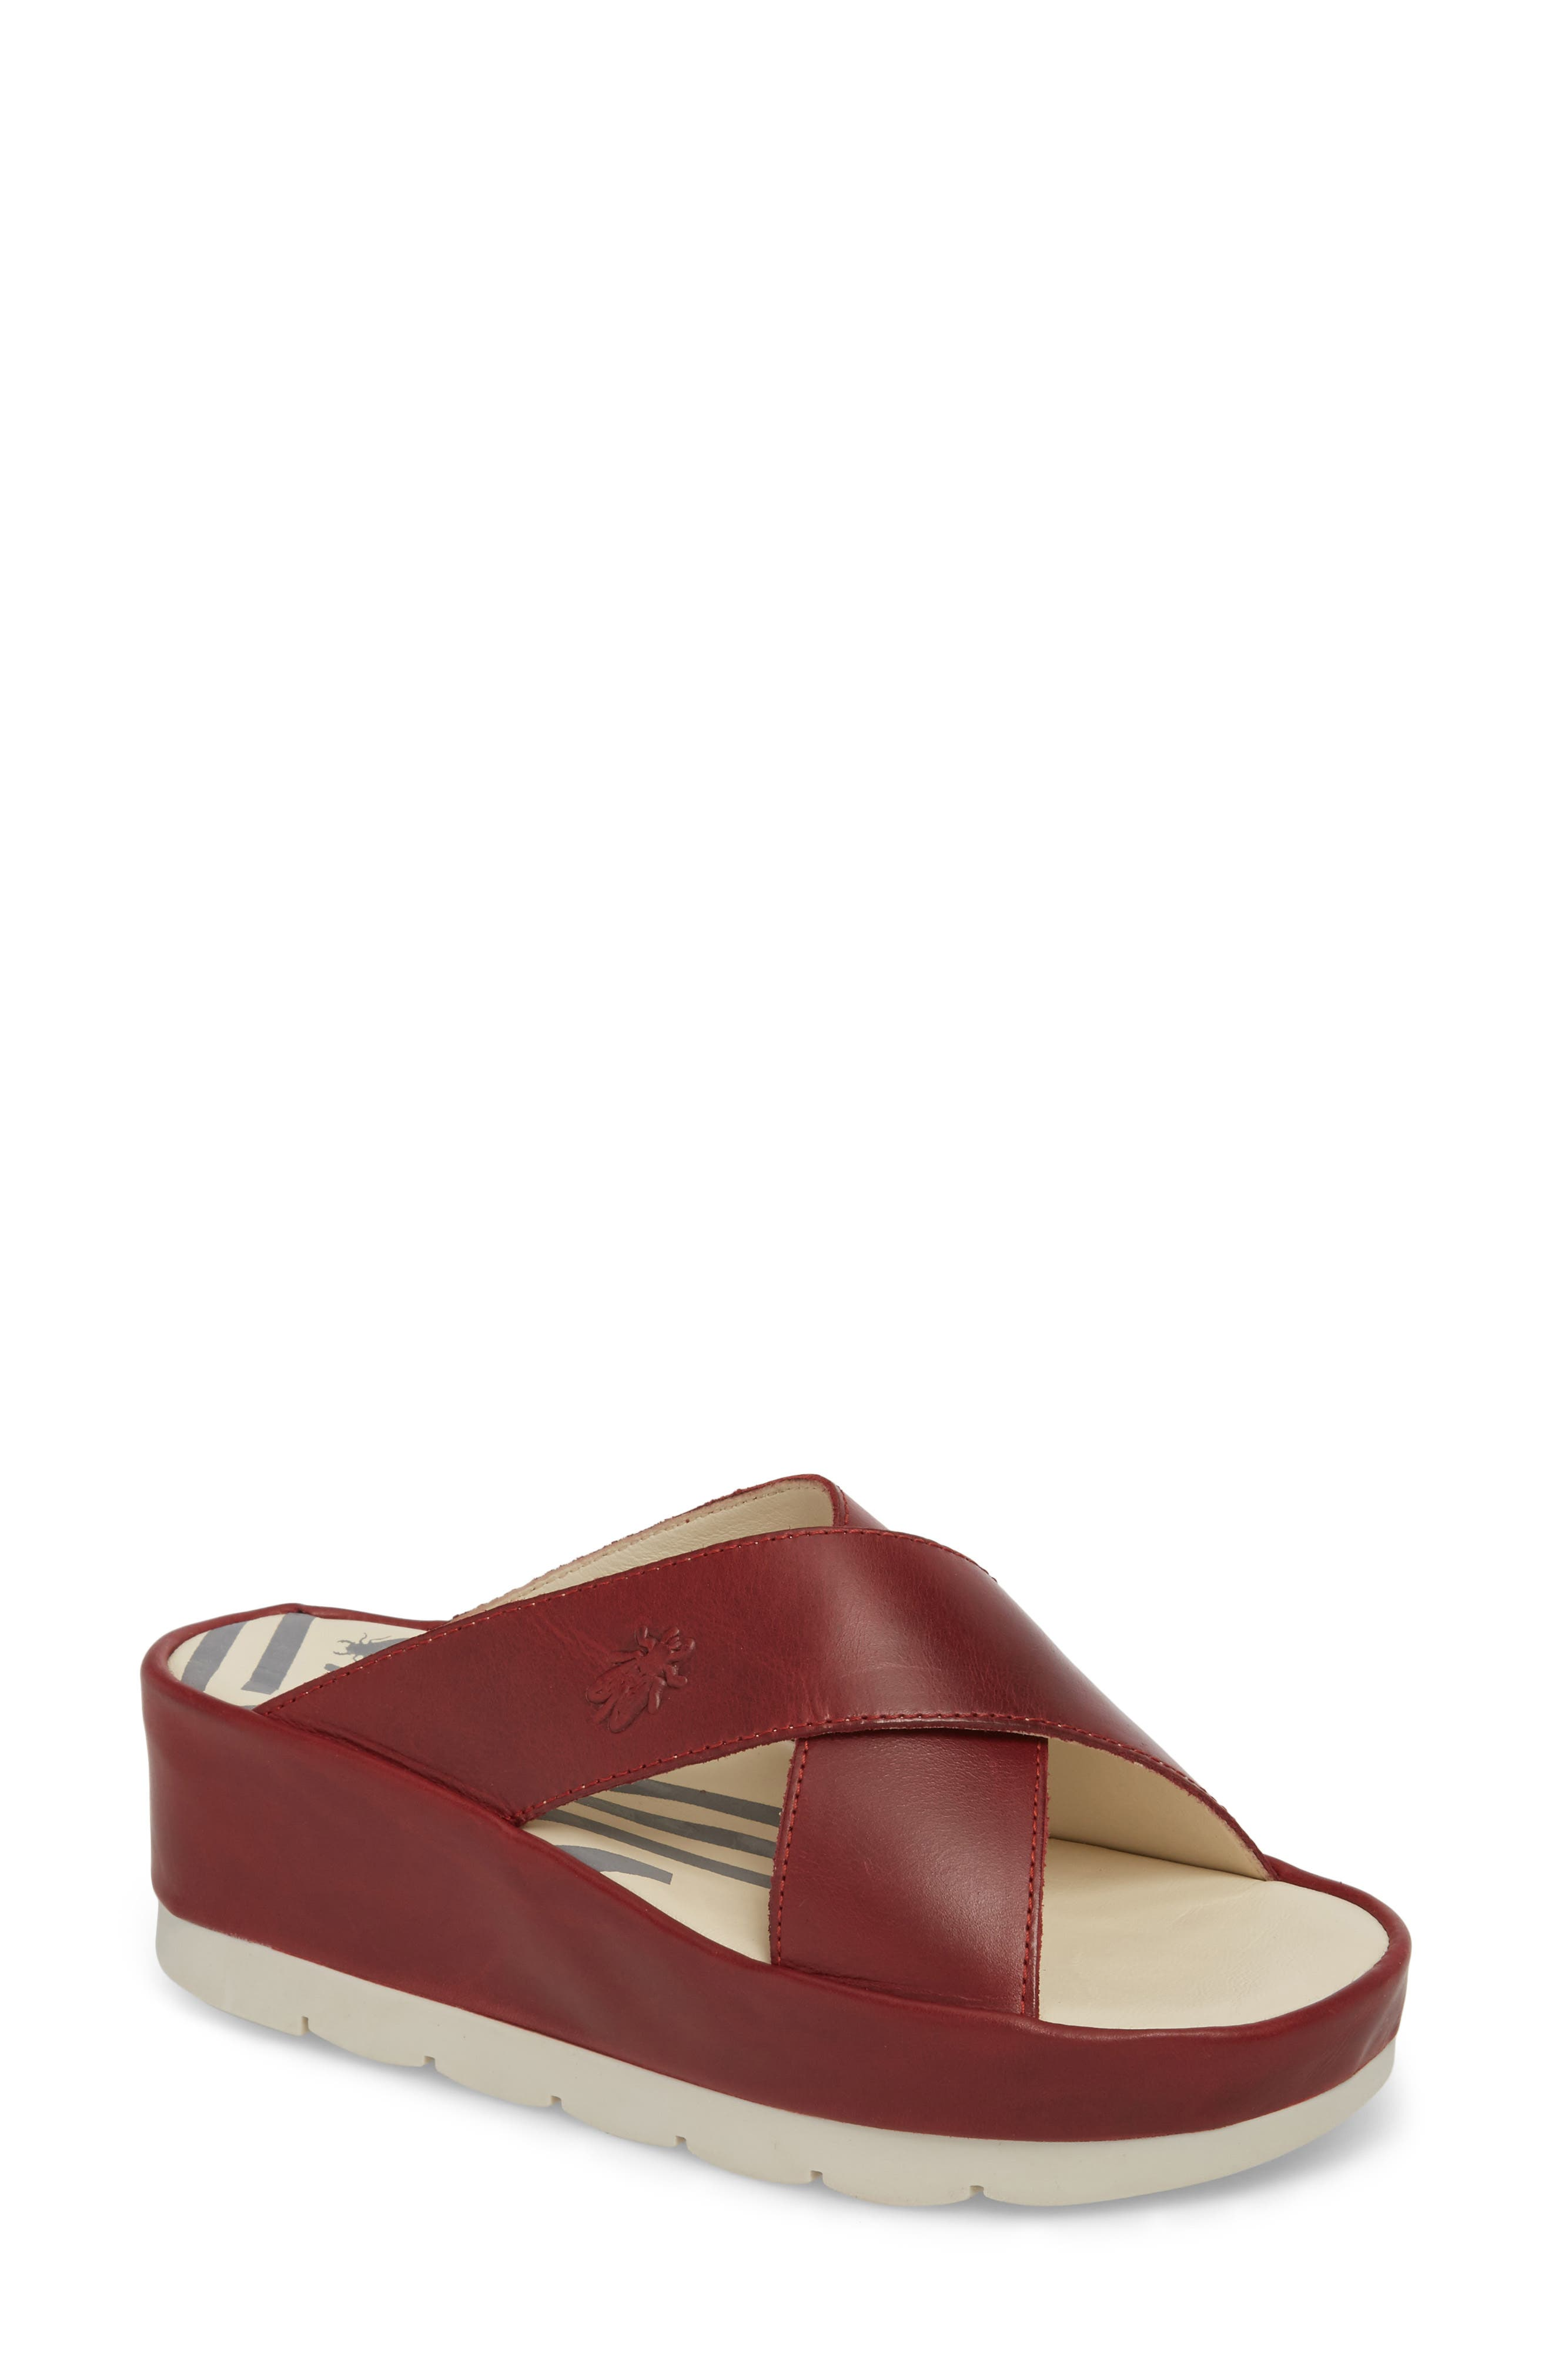 Fly London Begs Platform Slide Sandal (Women)